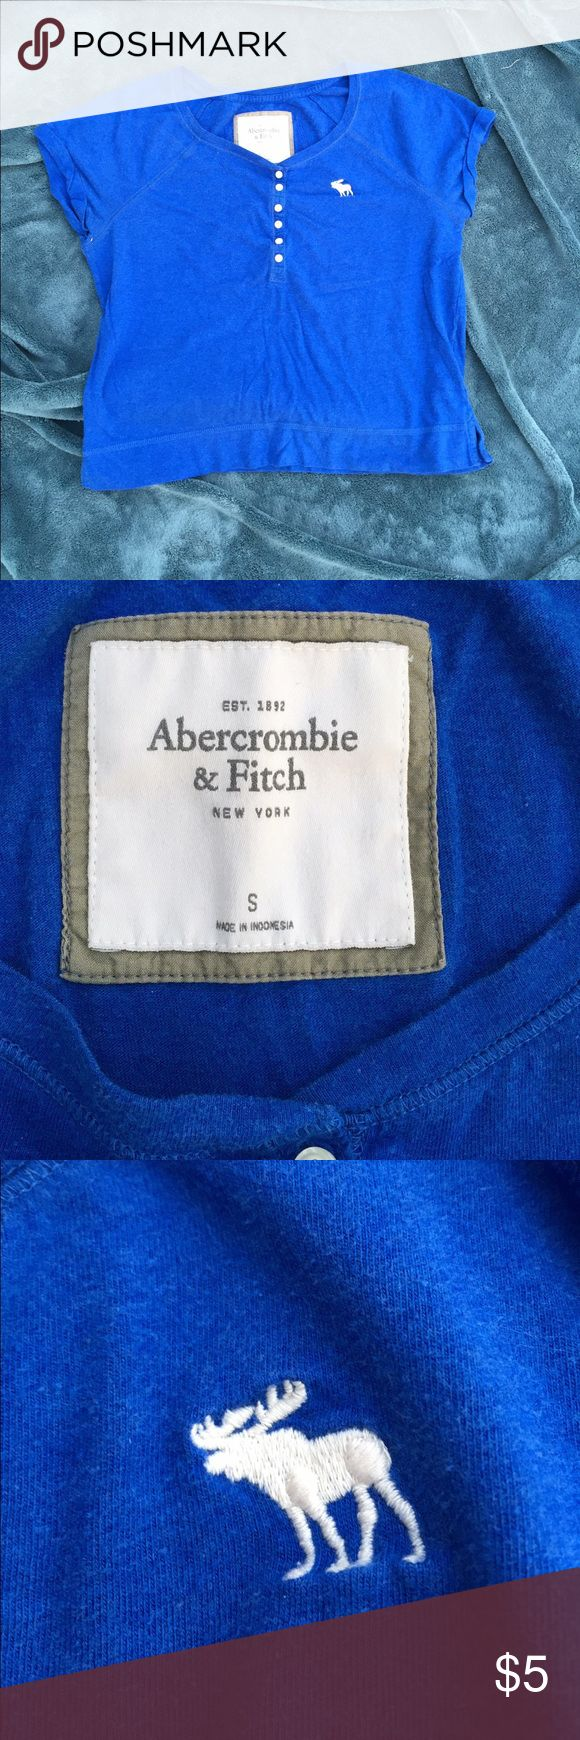 Abercrombie and Fitch mid button cap sleeve tshirt Abercrombie royal blue button down (only midway) cotton blend shirt with cap sleeves. See pics for condition...this was a very well loved shirt but still in very good condition. Priced to sell so someone else can enjoy her!! Abercrombie & Fitch Tops